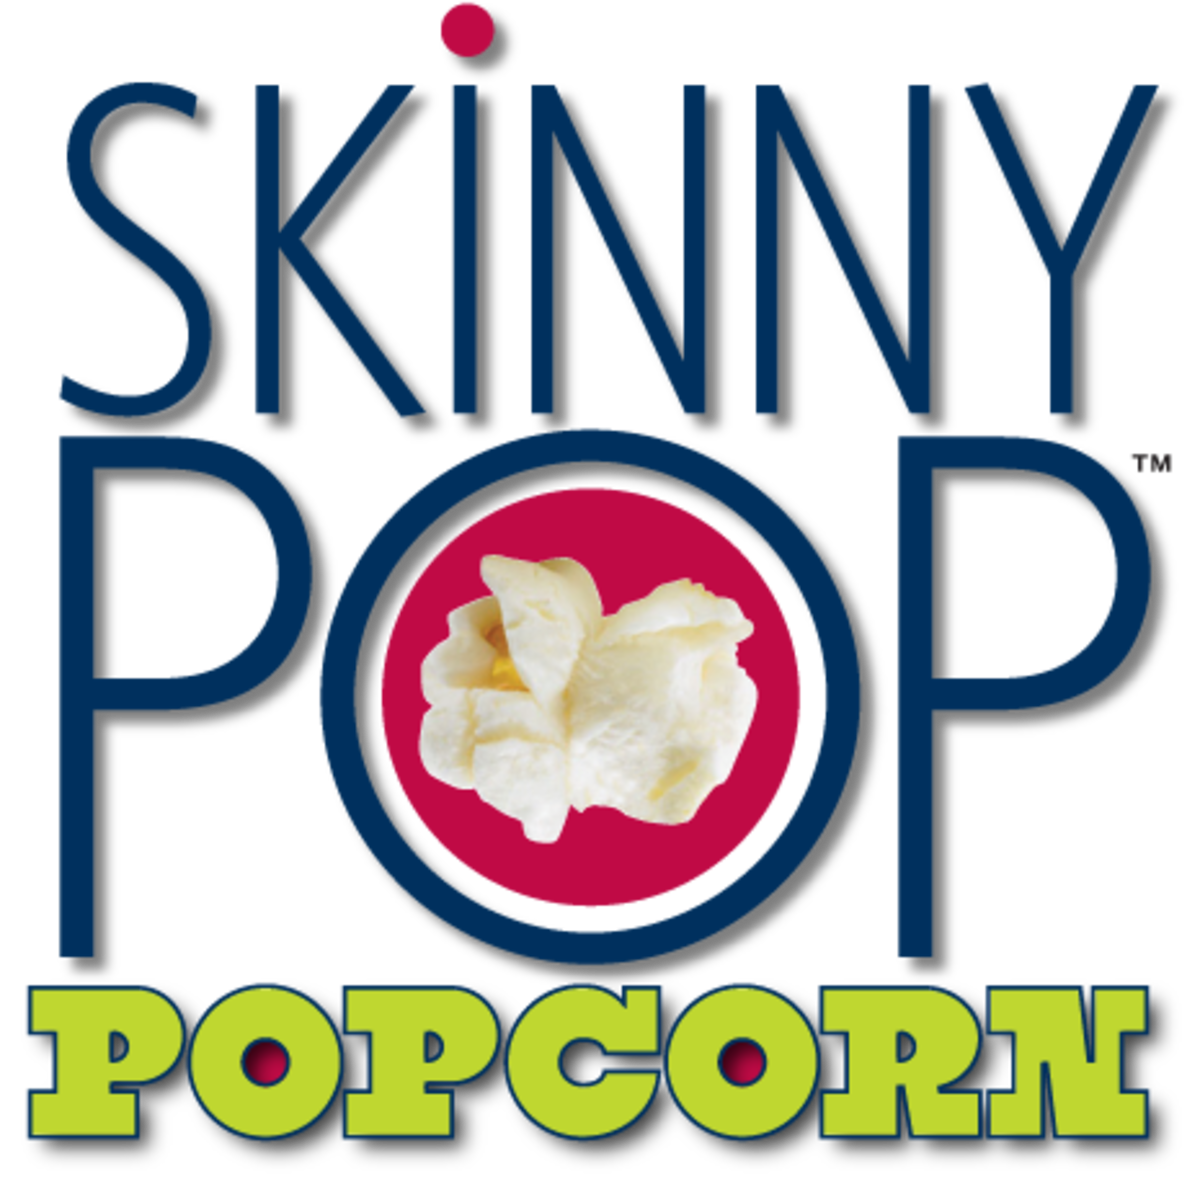 Skinny Pop Popcorn Review- A Tasty and Healthy Snack